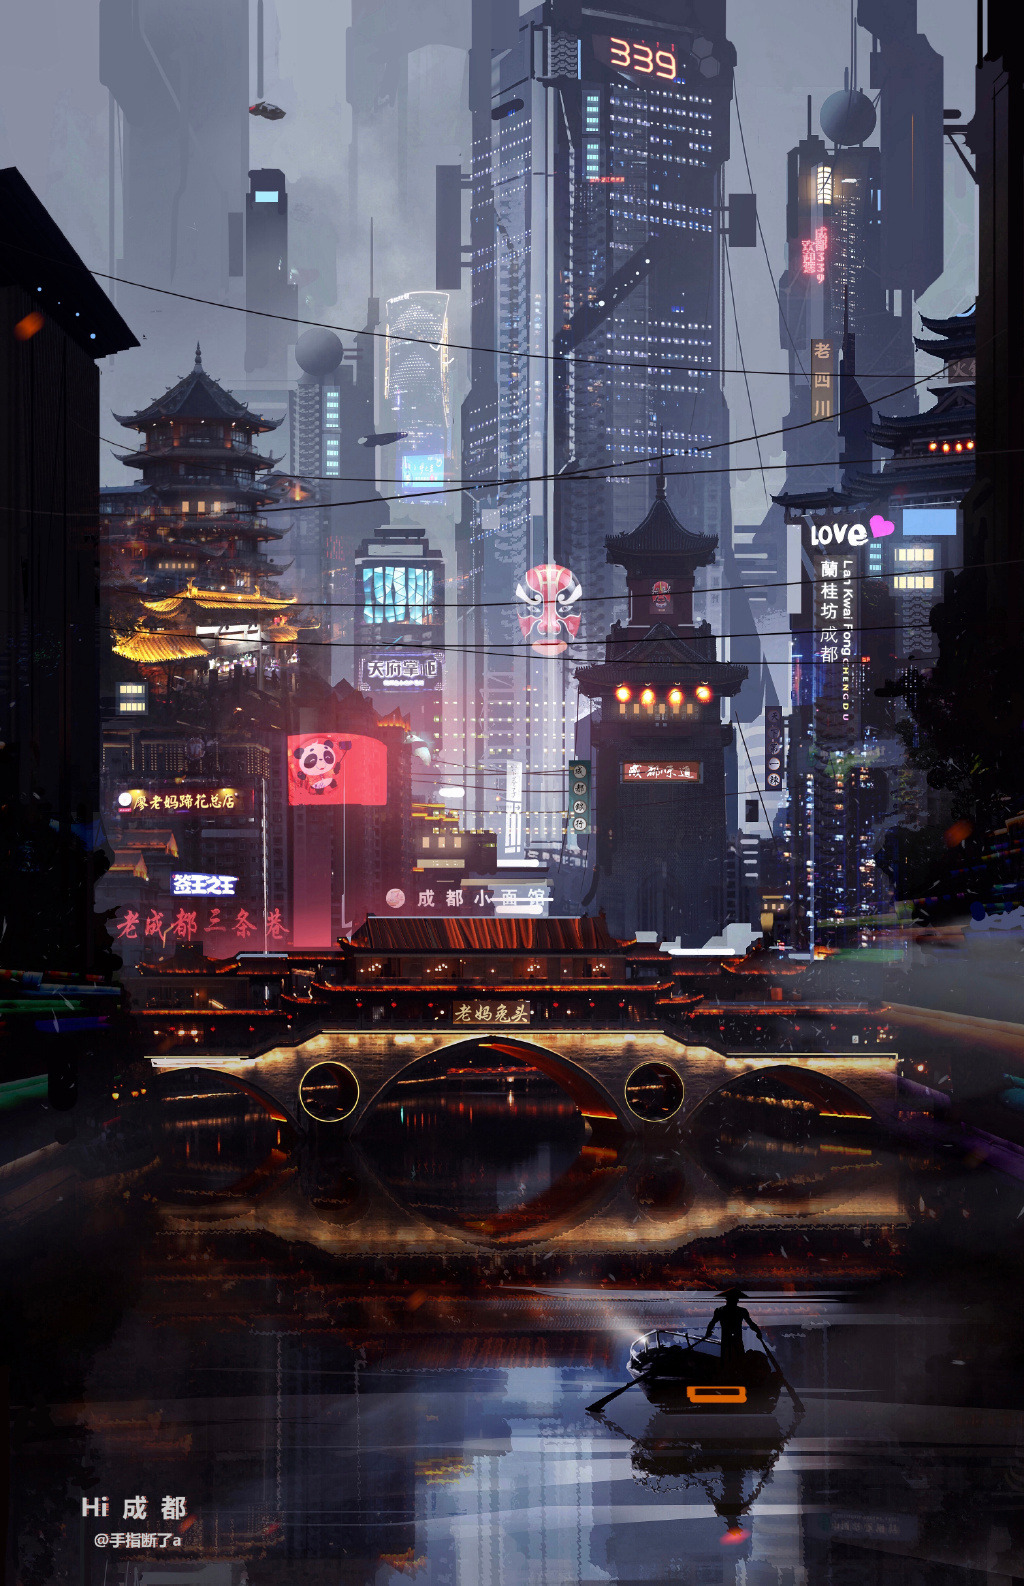 Futuristic cities - Cyberpunk Art and flying vehicles